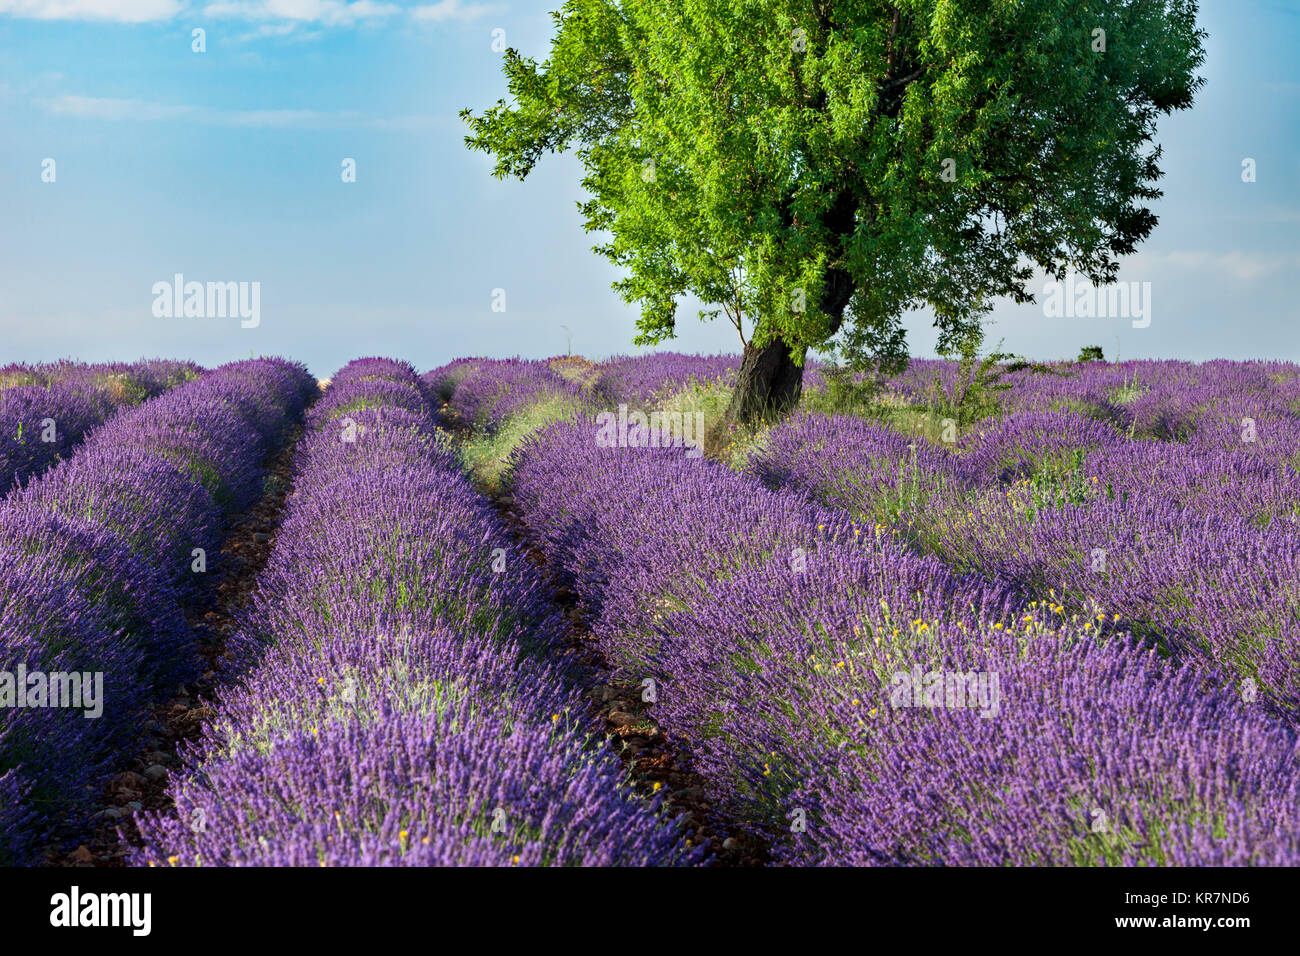 Rows of Lavender along the Valensole Plateau, Alpes- de-Haute-Provence, Provence France - Stock Image